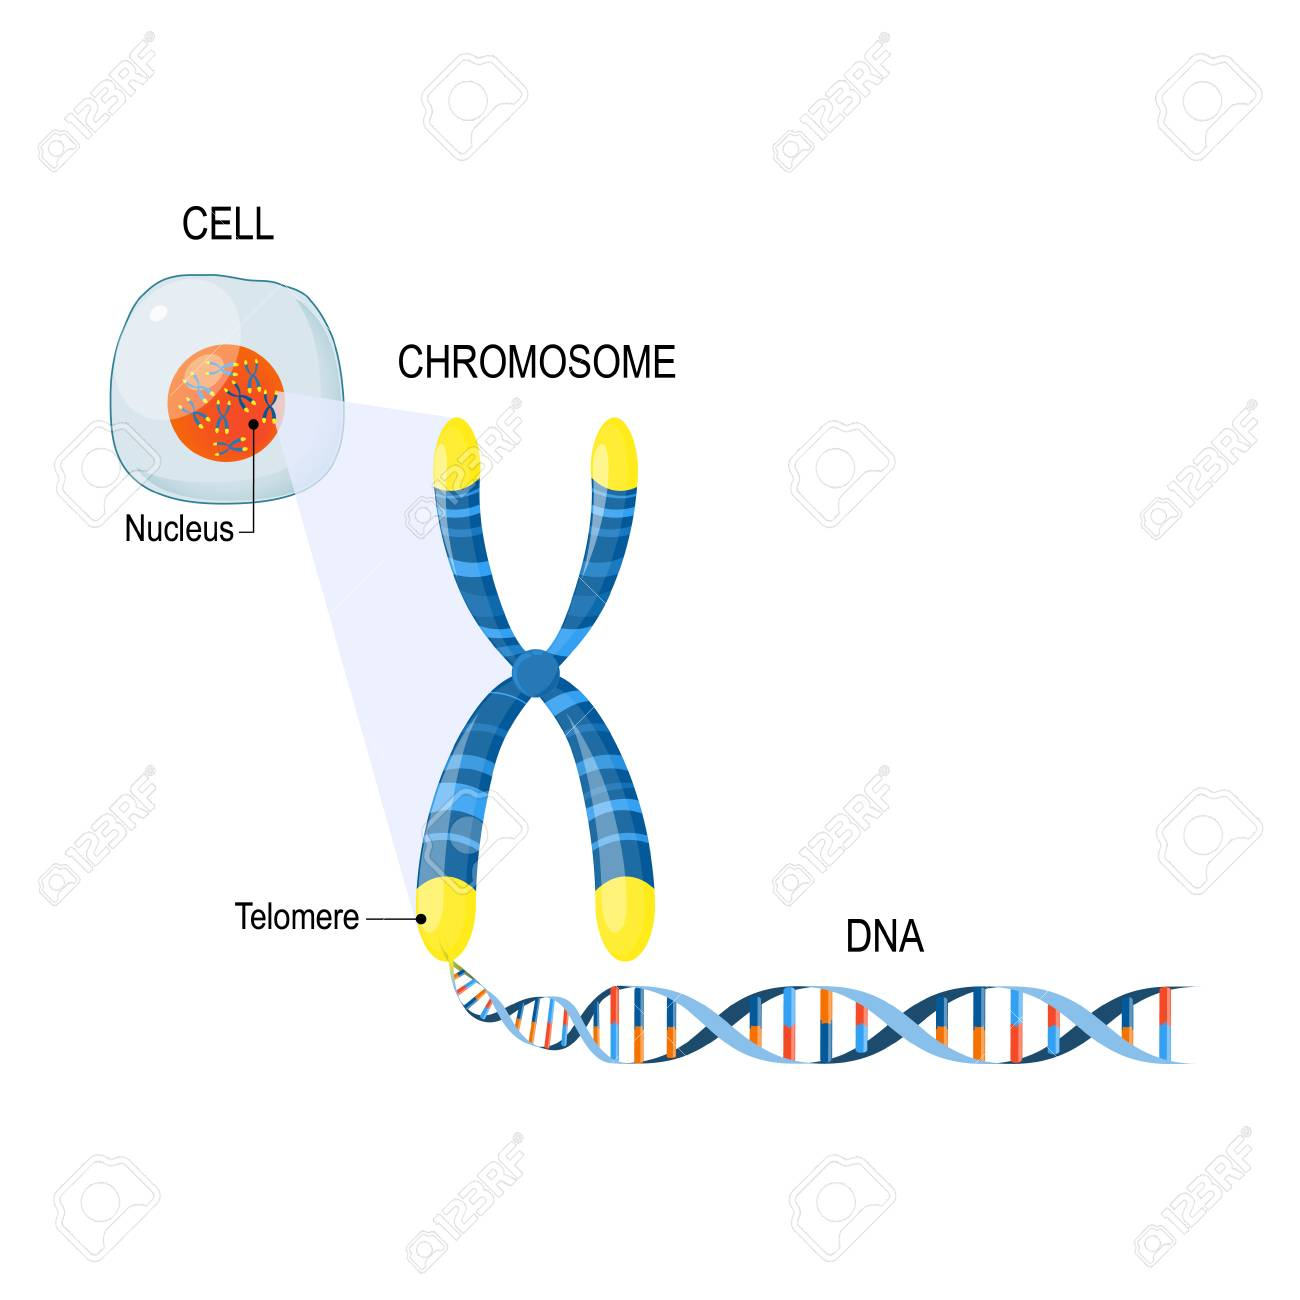 A telomere is a repeating sequence of double-stranded DNA located at the ends of chromosomes. Each time a cell divides, the telomeres become shorter. Cell Structure. The DNA molecule is a double helix. A gene is a length of DNA that codes for a specific protein. Genome Study. Cell, nucleus with chromosomes, telomeres, DNA, and gene - 97574722